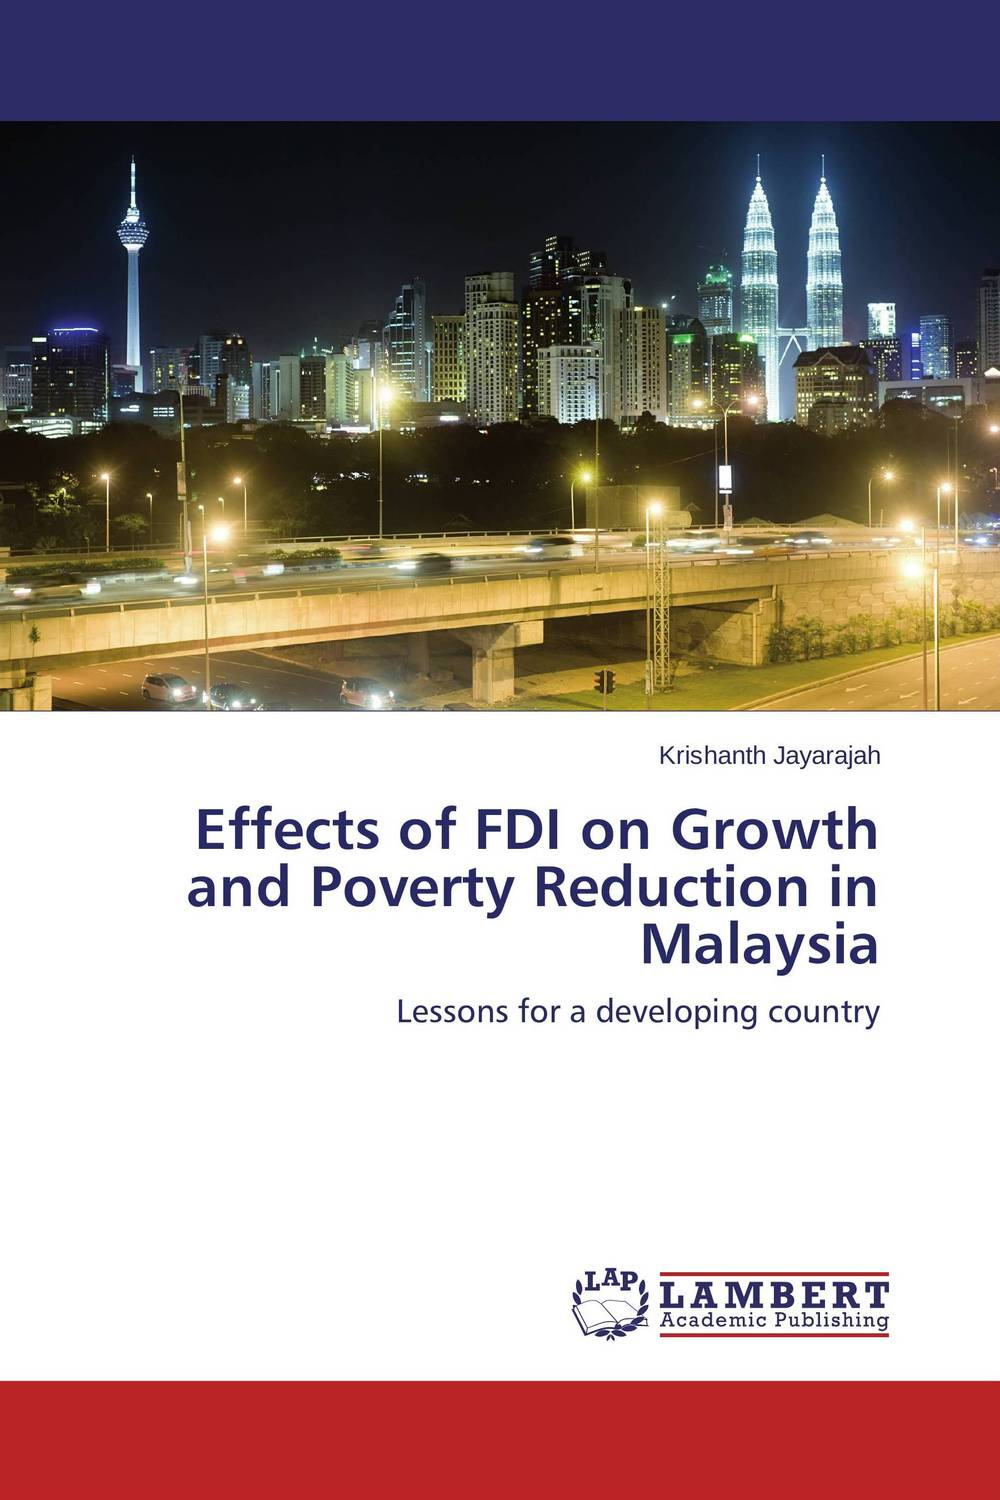 Effects of FDI on Growth and Poverty Reduction in Malaysia globalization its challenges on democracy and effects on africa